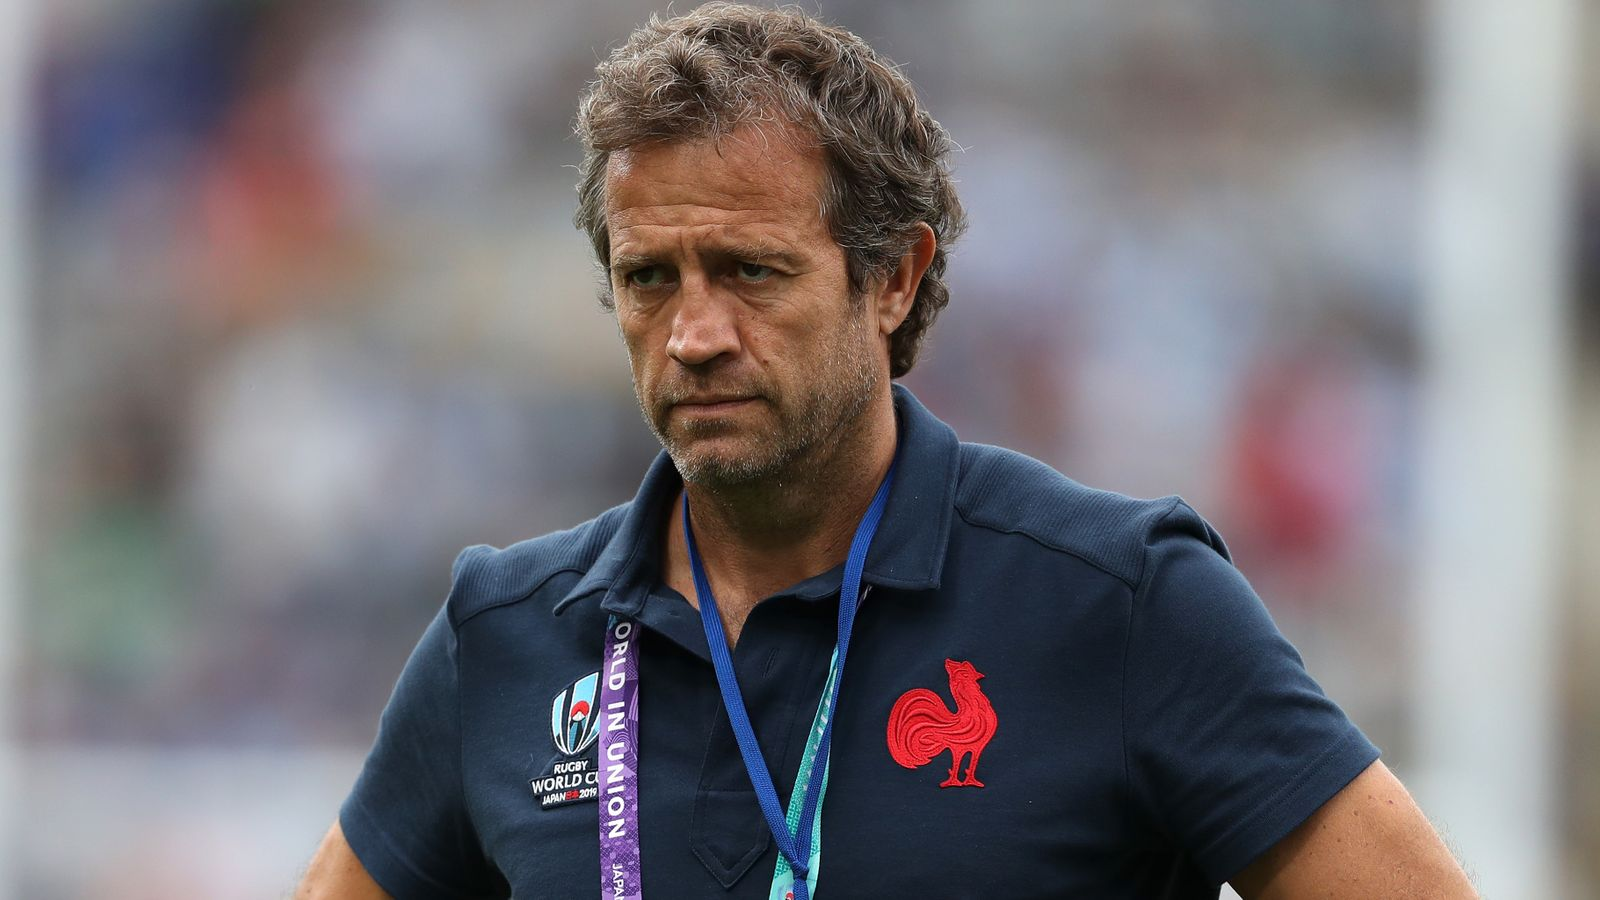 Six Nations: France coach Fabien Galthie hits out at 'disrespectful' Wyn Jones